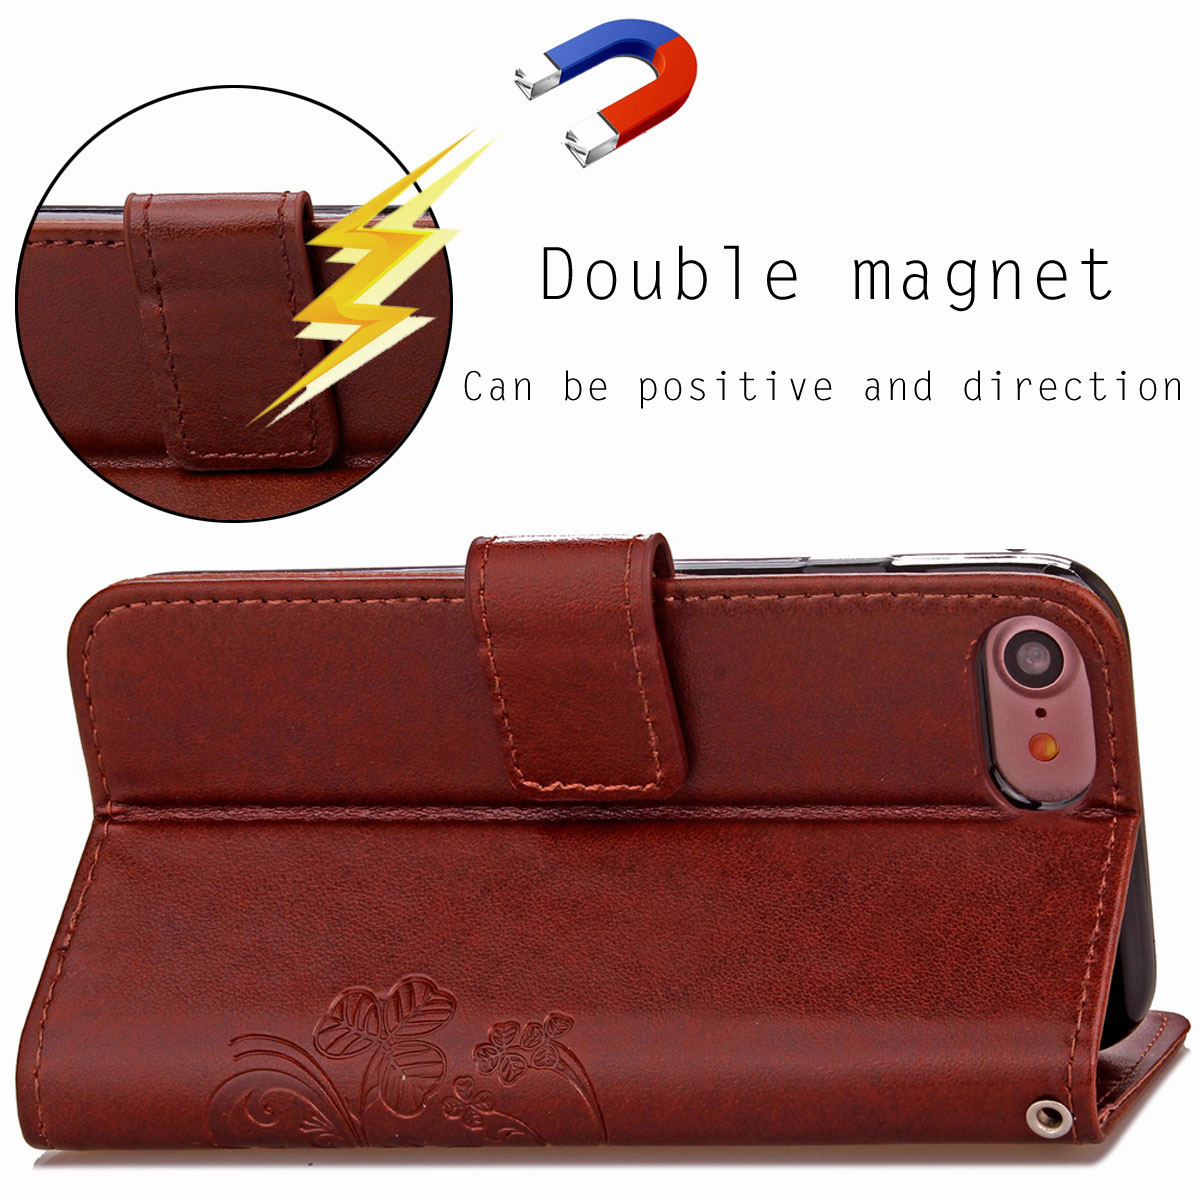 For-Apple-iPhone-Phones-Soft-Leather-Magnetic-Wallet-Card-Holder-Sim-Case-Cover thumbnail 16